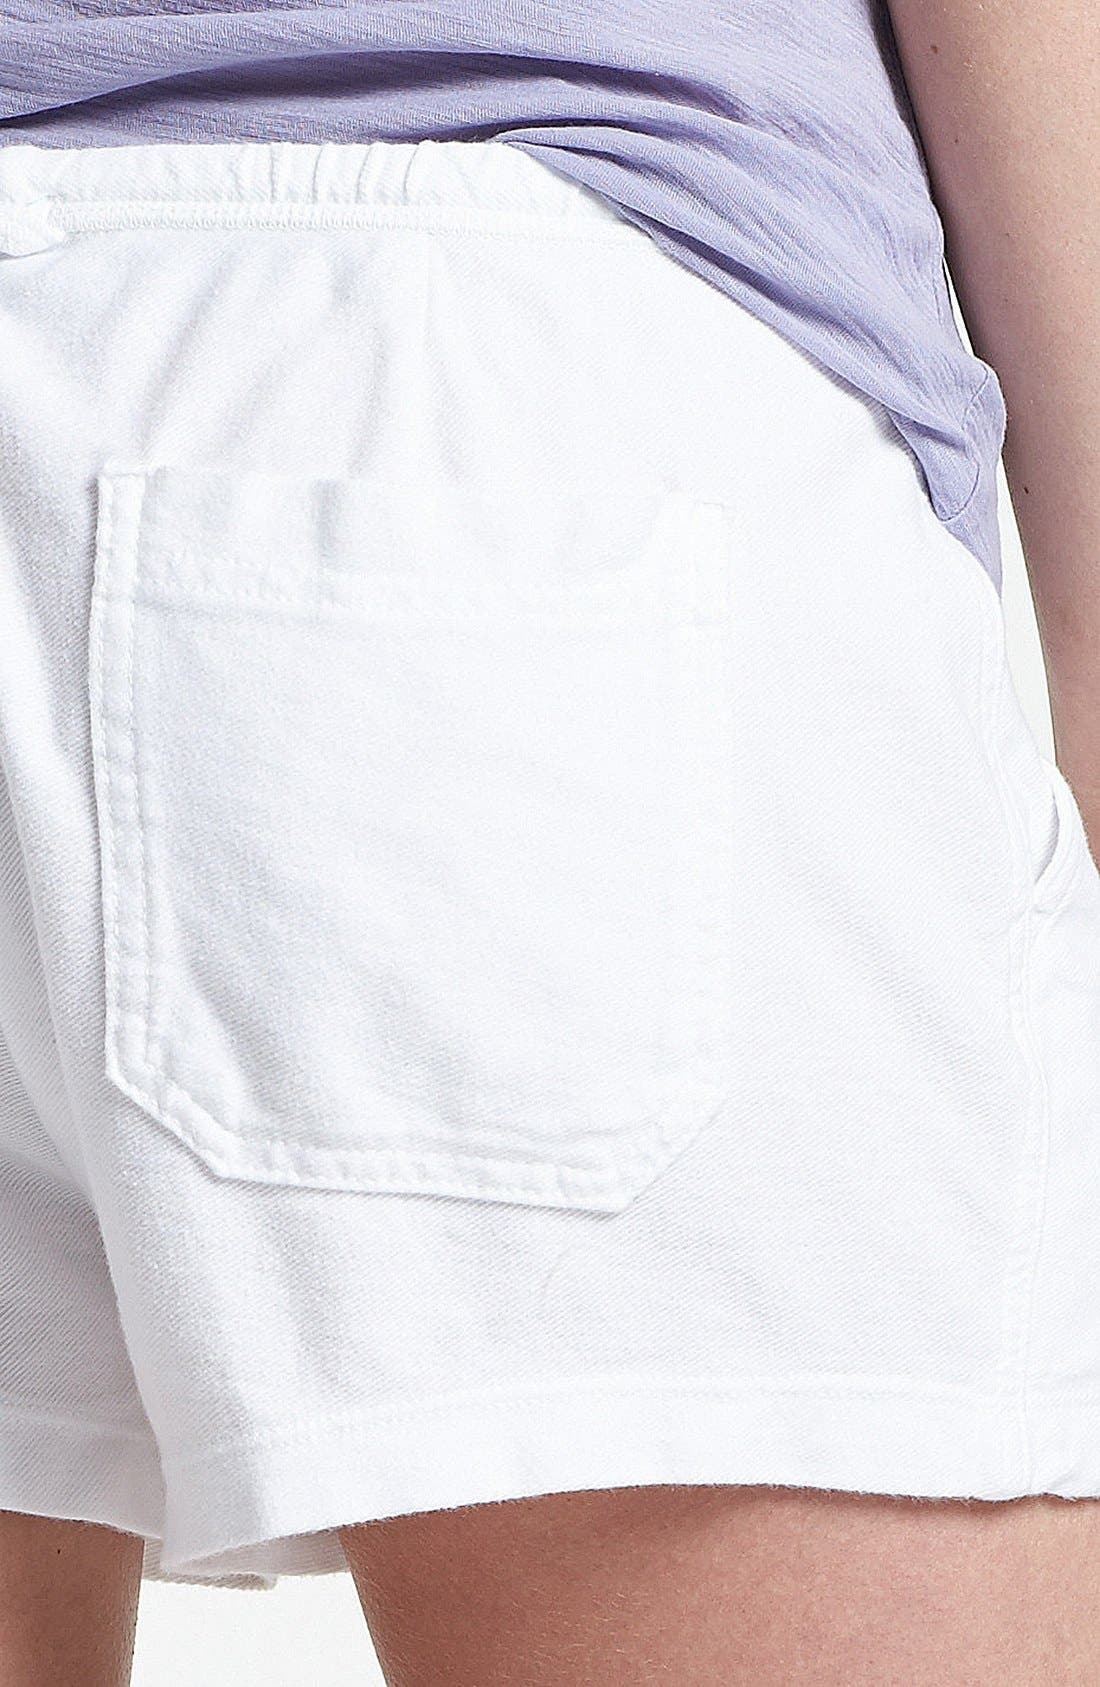 JAMES PERSE, Pintucked Twill Shorts, Alternate thumbnail 3, color, 100